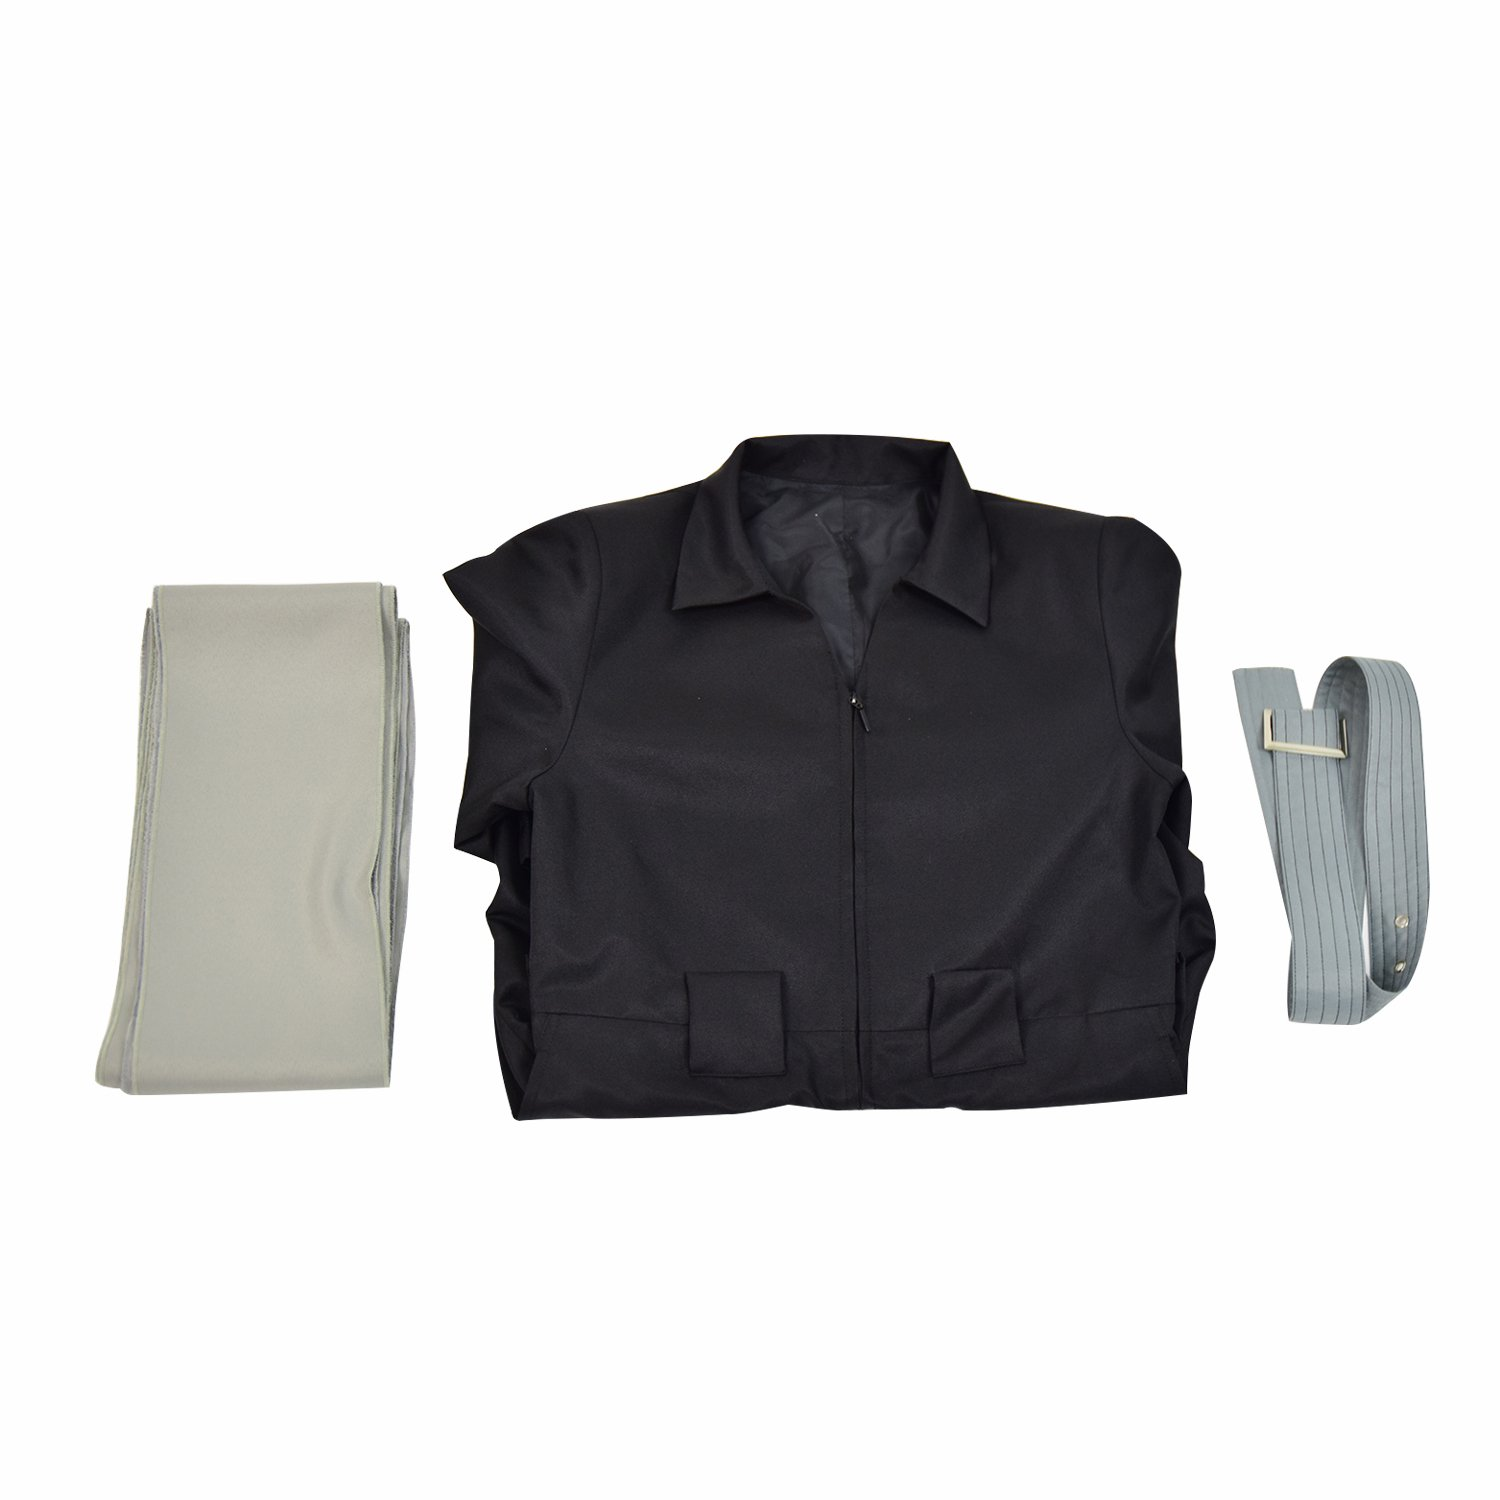 Amazon.com: FANERR Eraserhead Shota Aizawa Cosplay Costume Uniform Set: Clothing